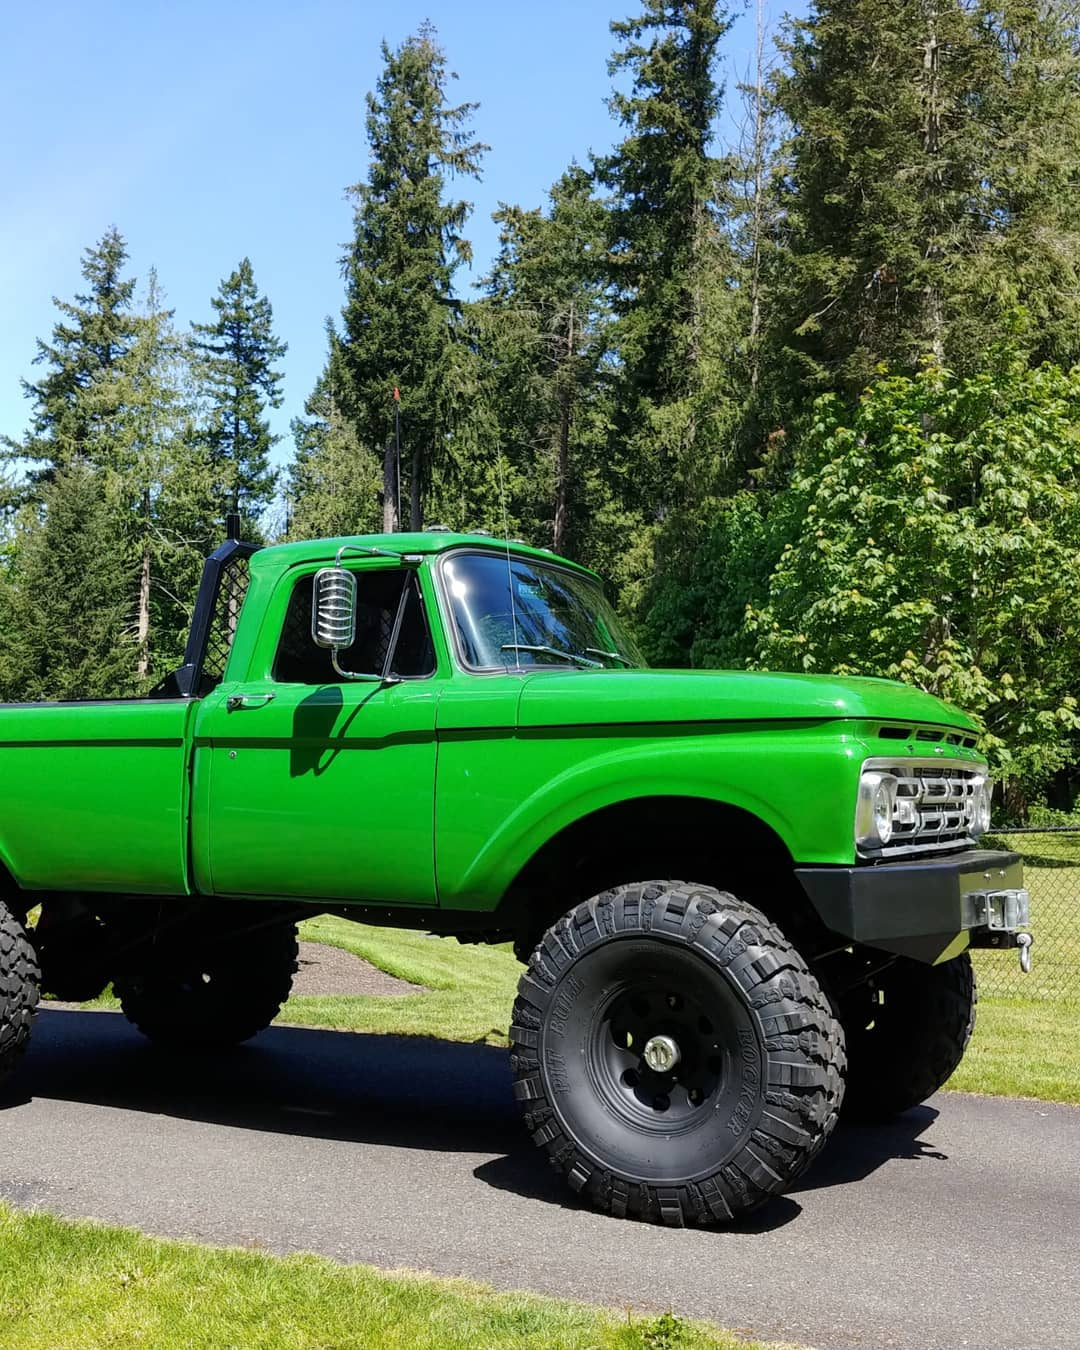 1965 Ford F100 With a 64 Grill On 41.5 Pitbull Tires 6.jpg